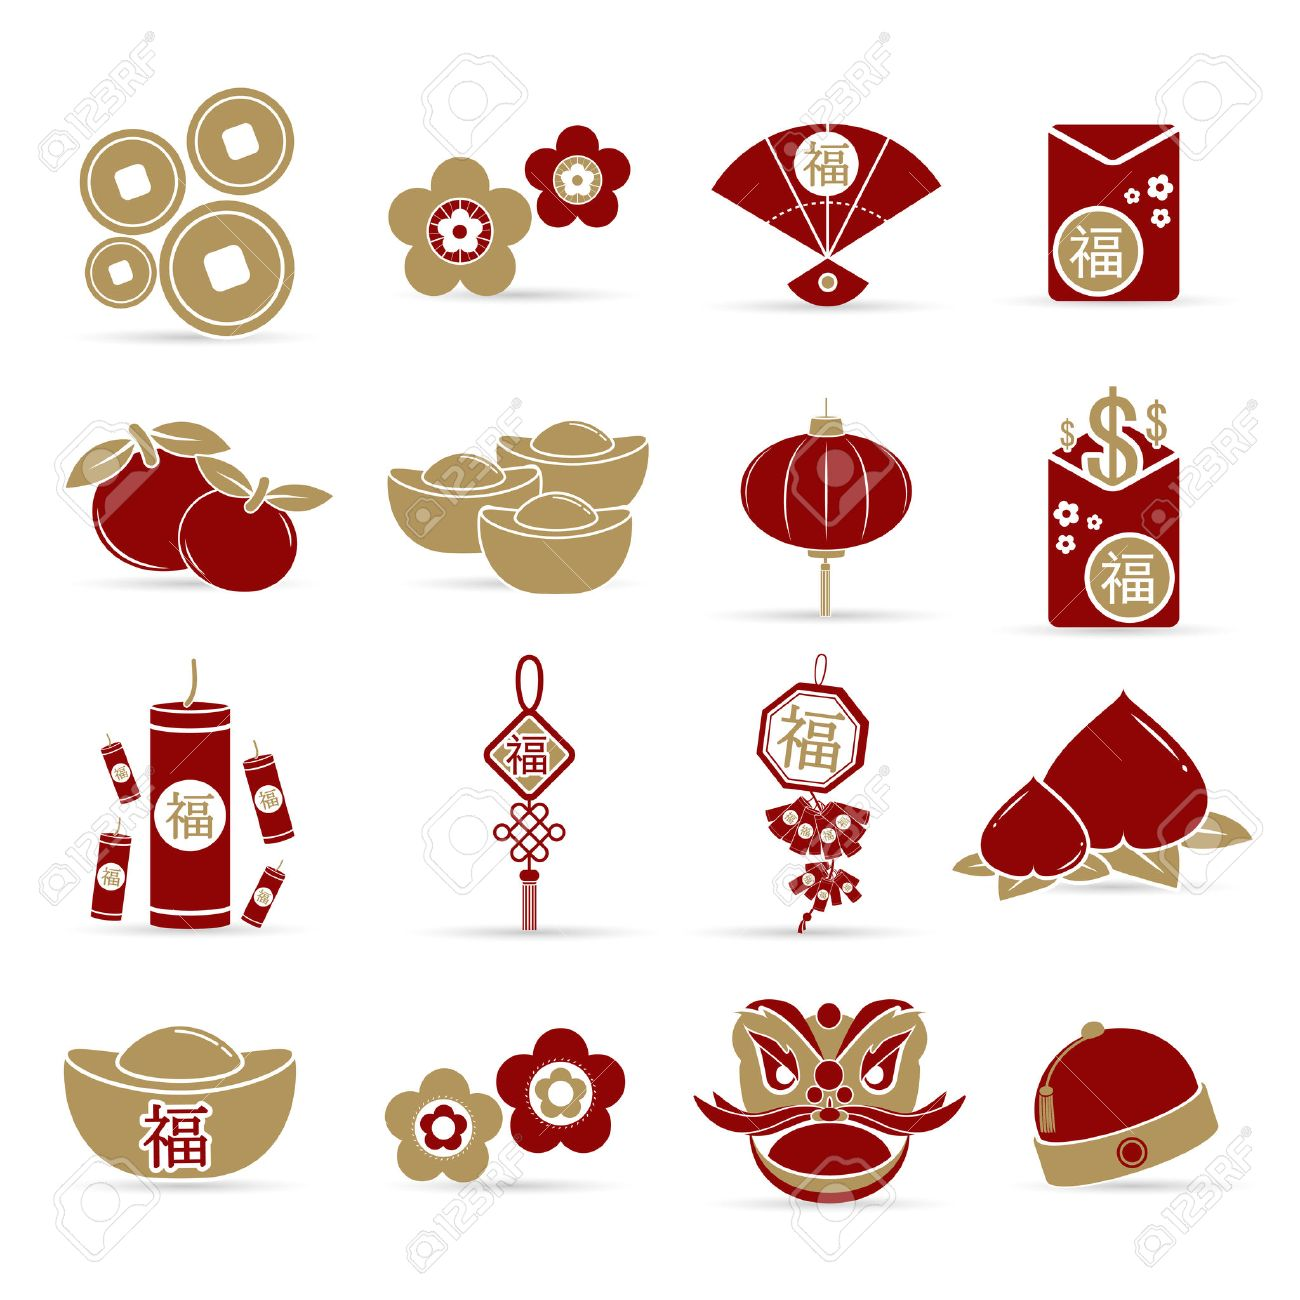 Chinese New Year Elements With Text And Pattern Background